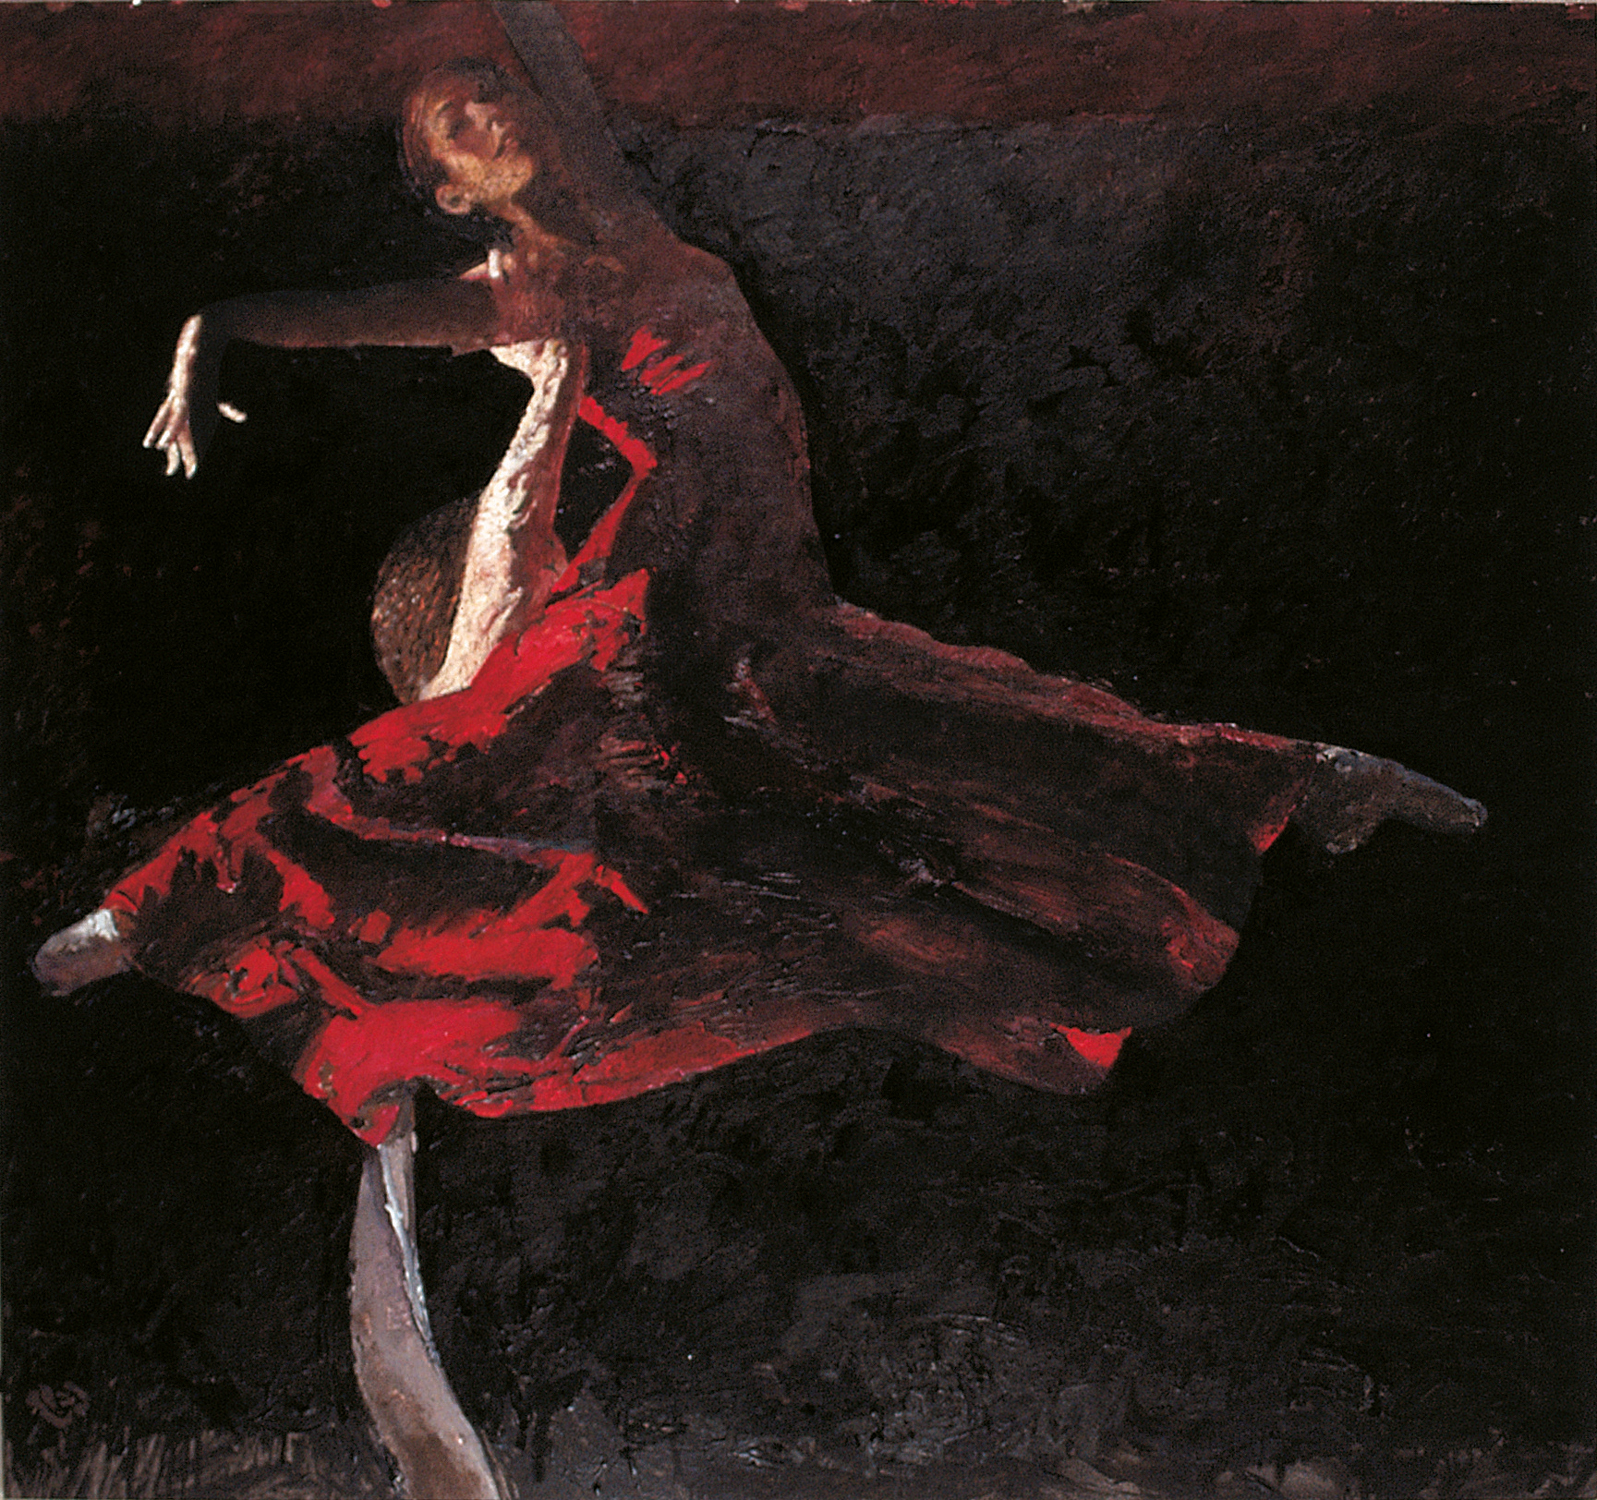 Robert Heindel painting of Birmingham Royal ballet